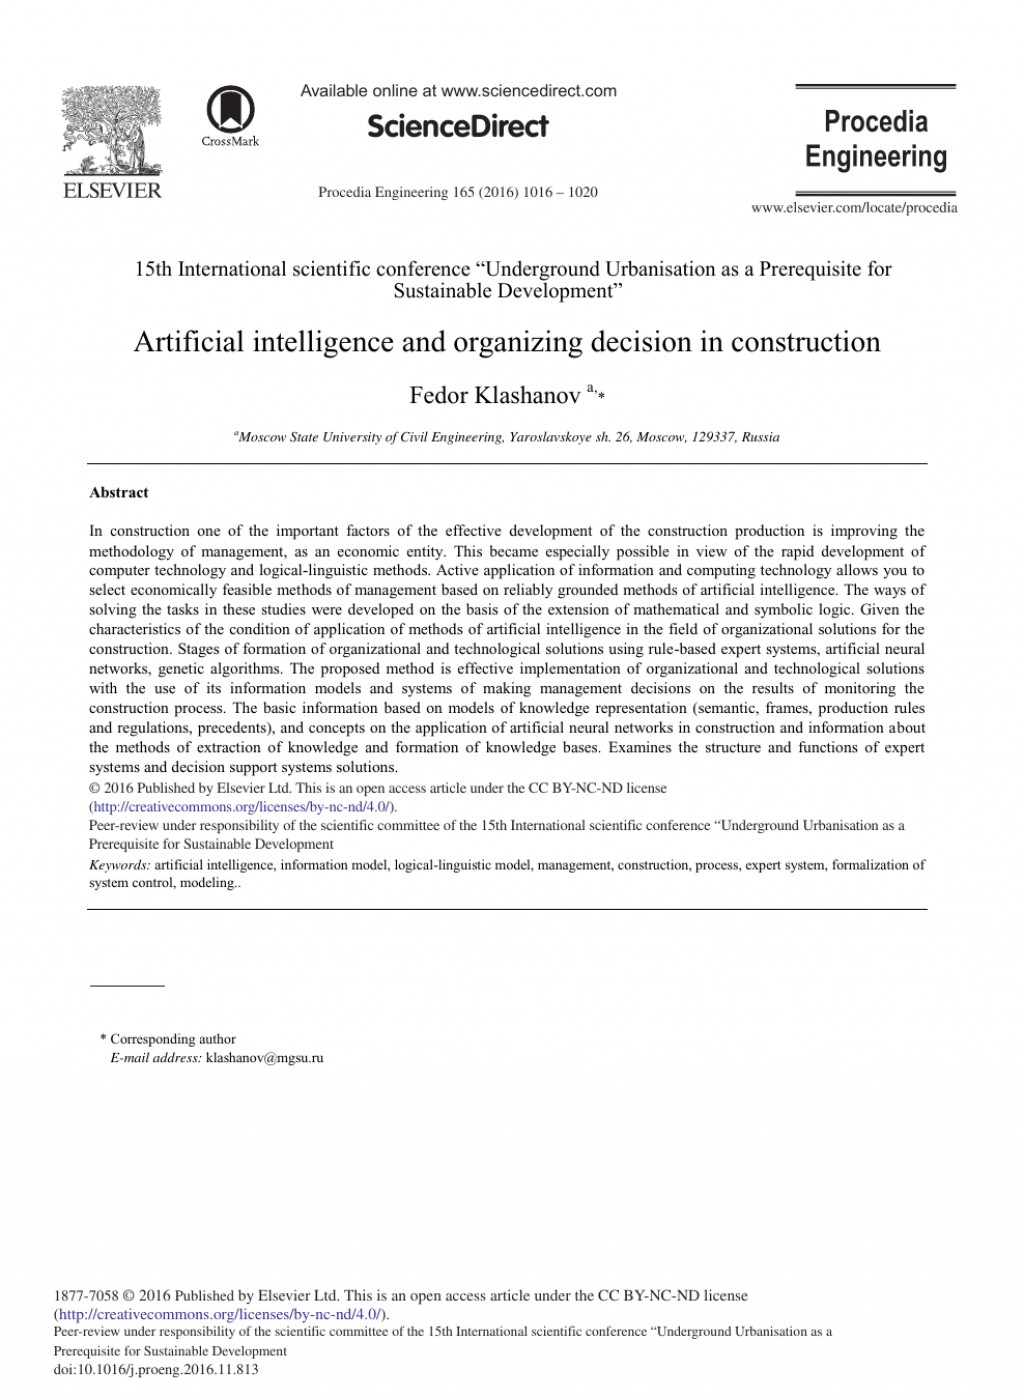 004 Artificial Intelligence Researchs Singular Research Papers 2016 Large